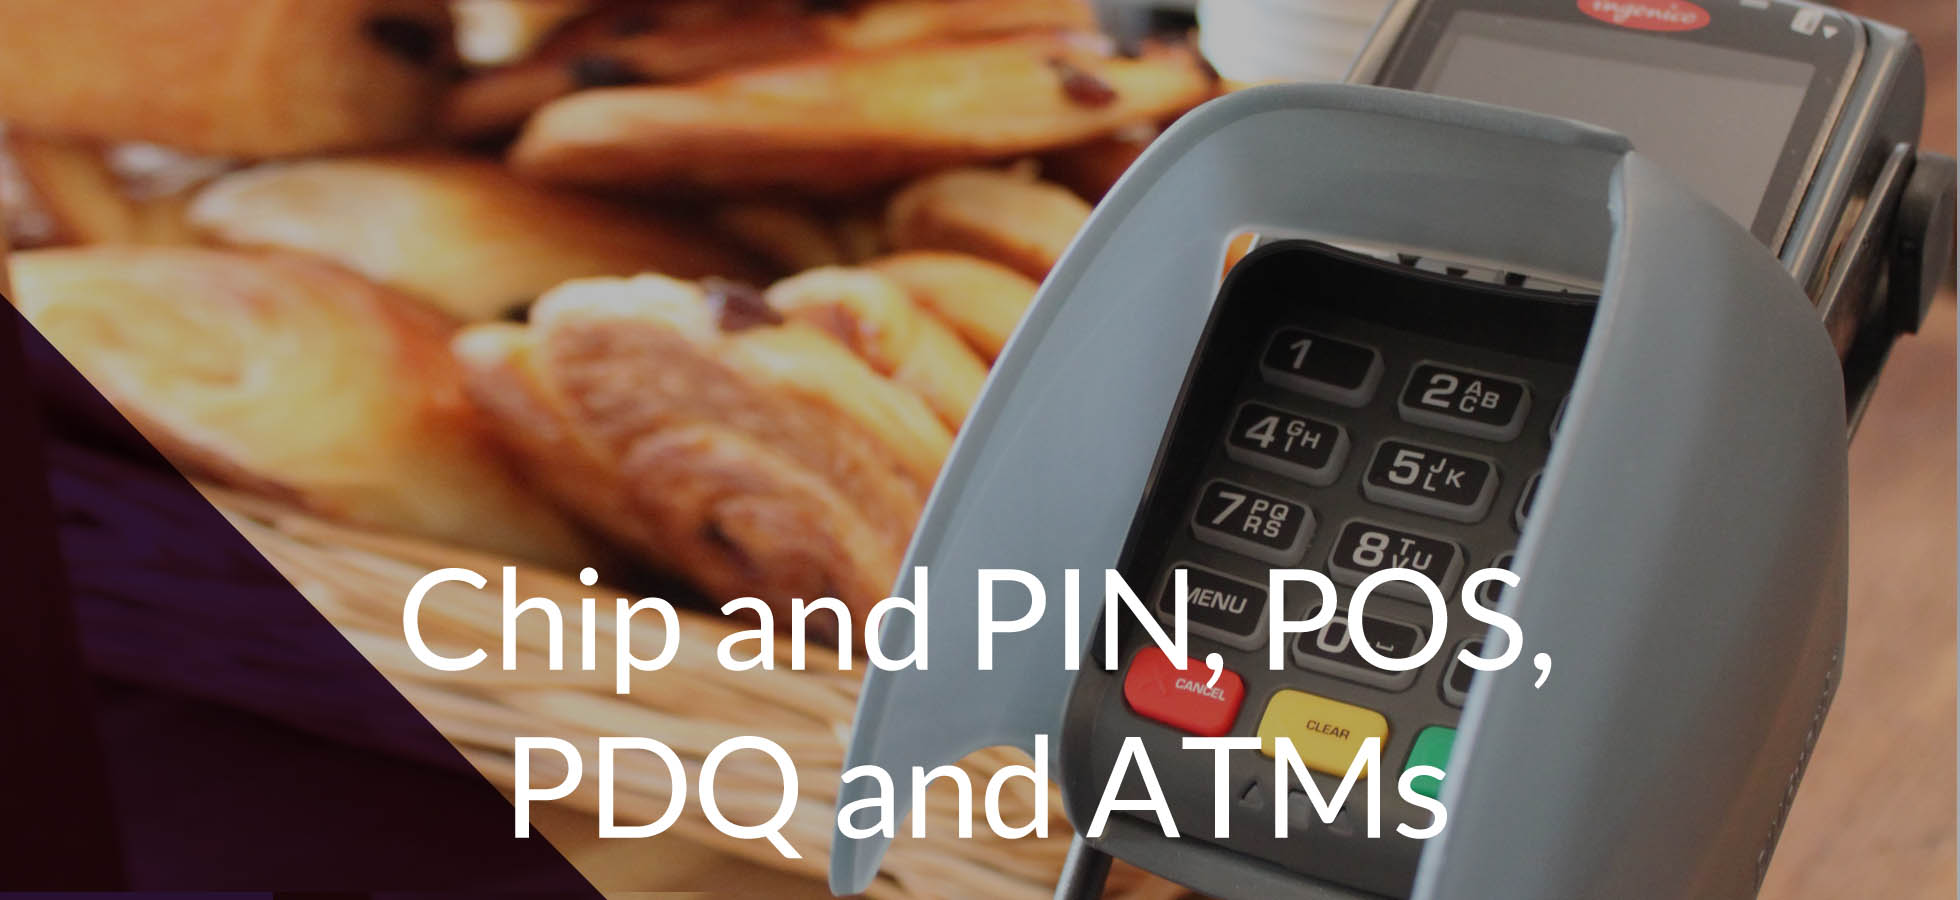 Chip and Pin, POS, PDQ and ATM pin protection